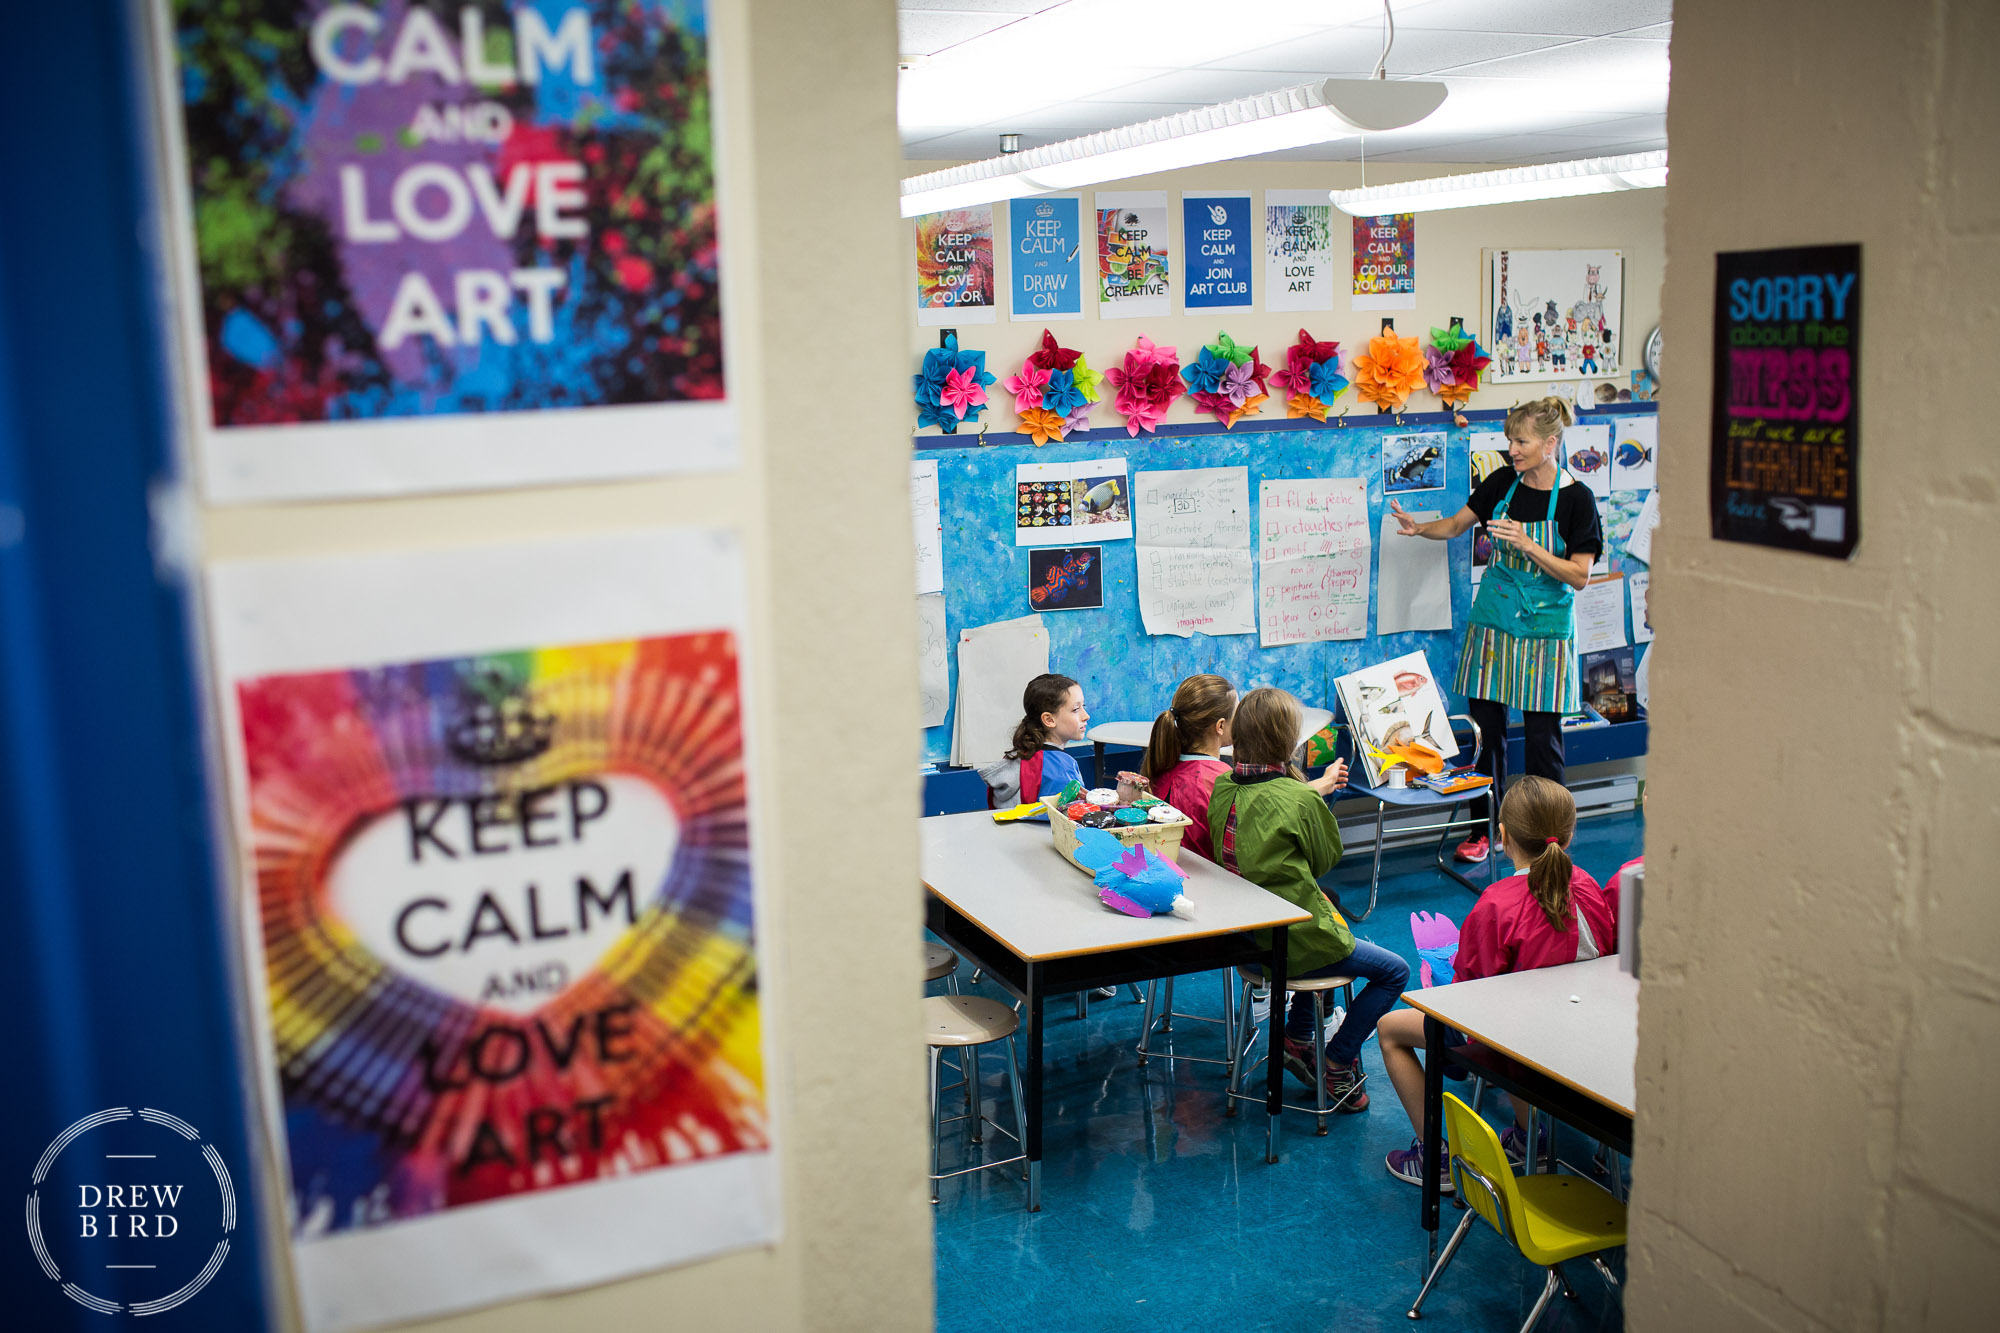 A primary school woman teacher with her class and signs that read keep calm and love art at St. George's School of Montreal in Quebec, Canada. San Francisco independent school photographer and private school marketing photography and brand lifestyle photography by Drew Bird.